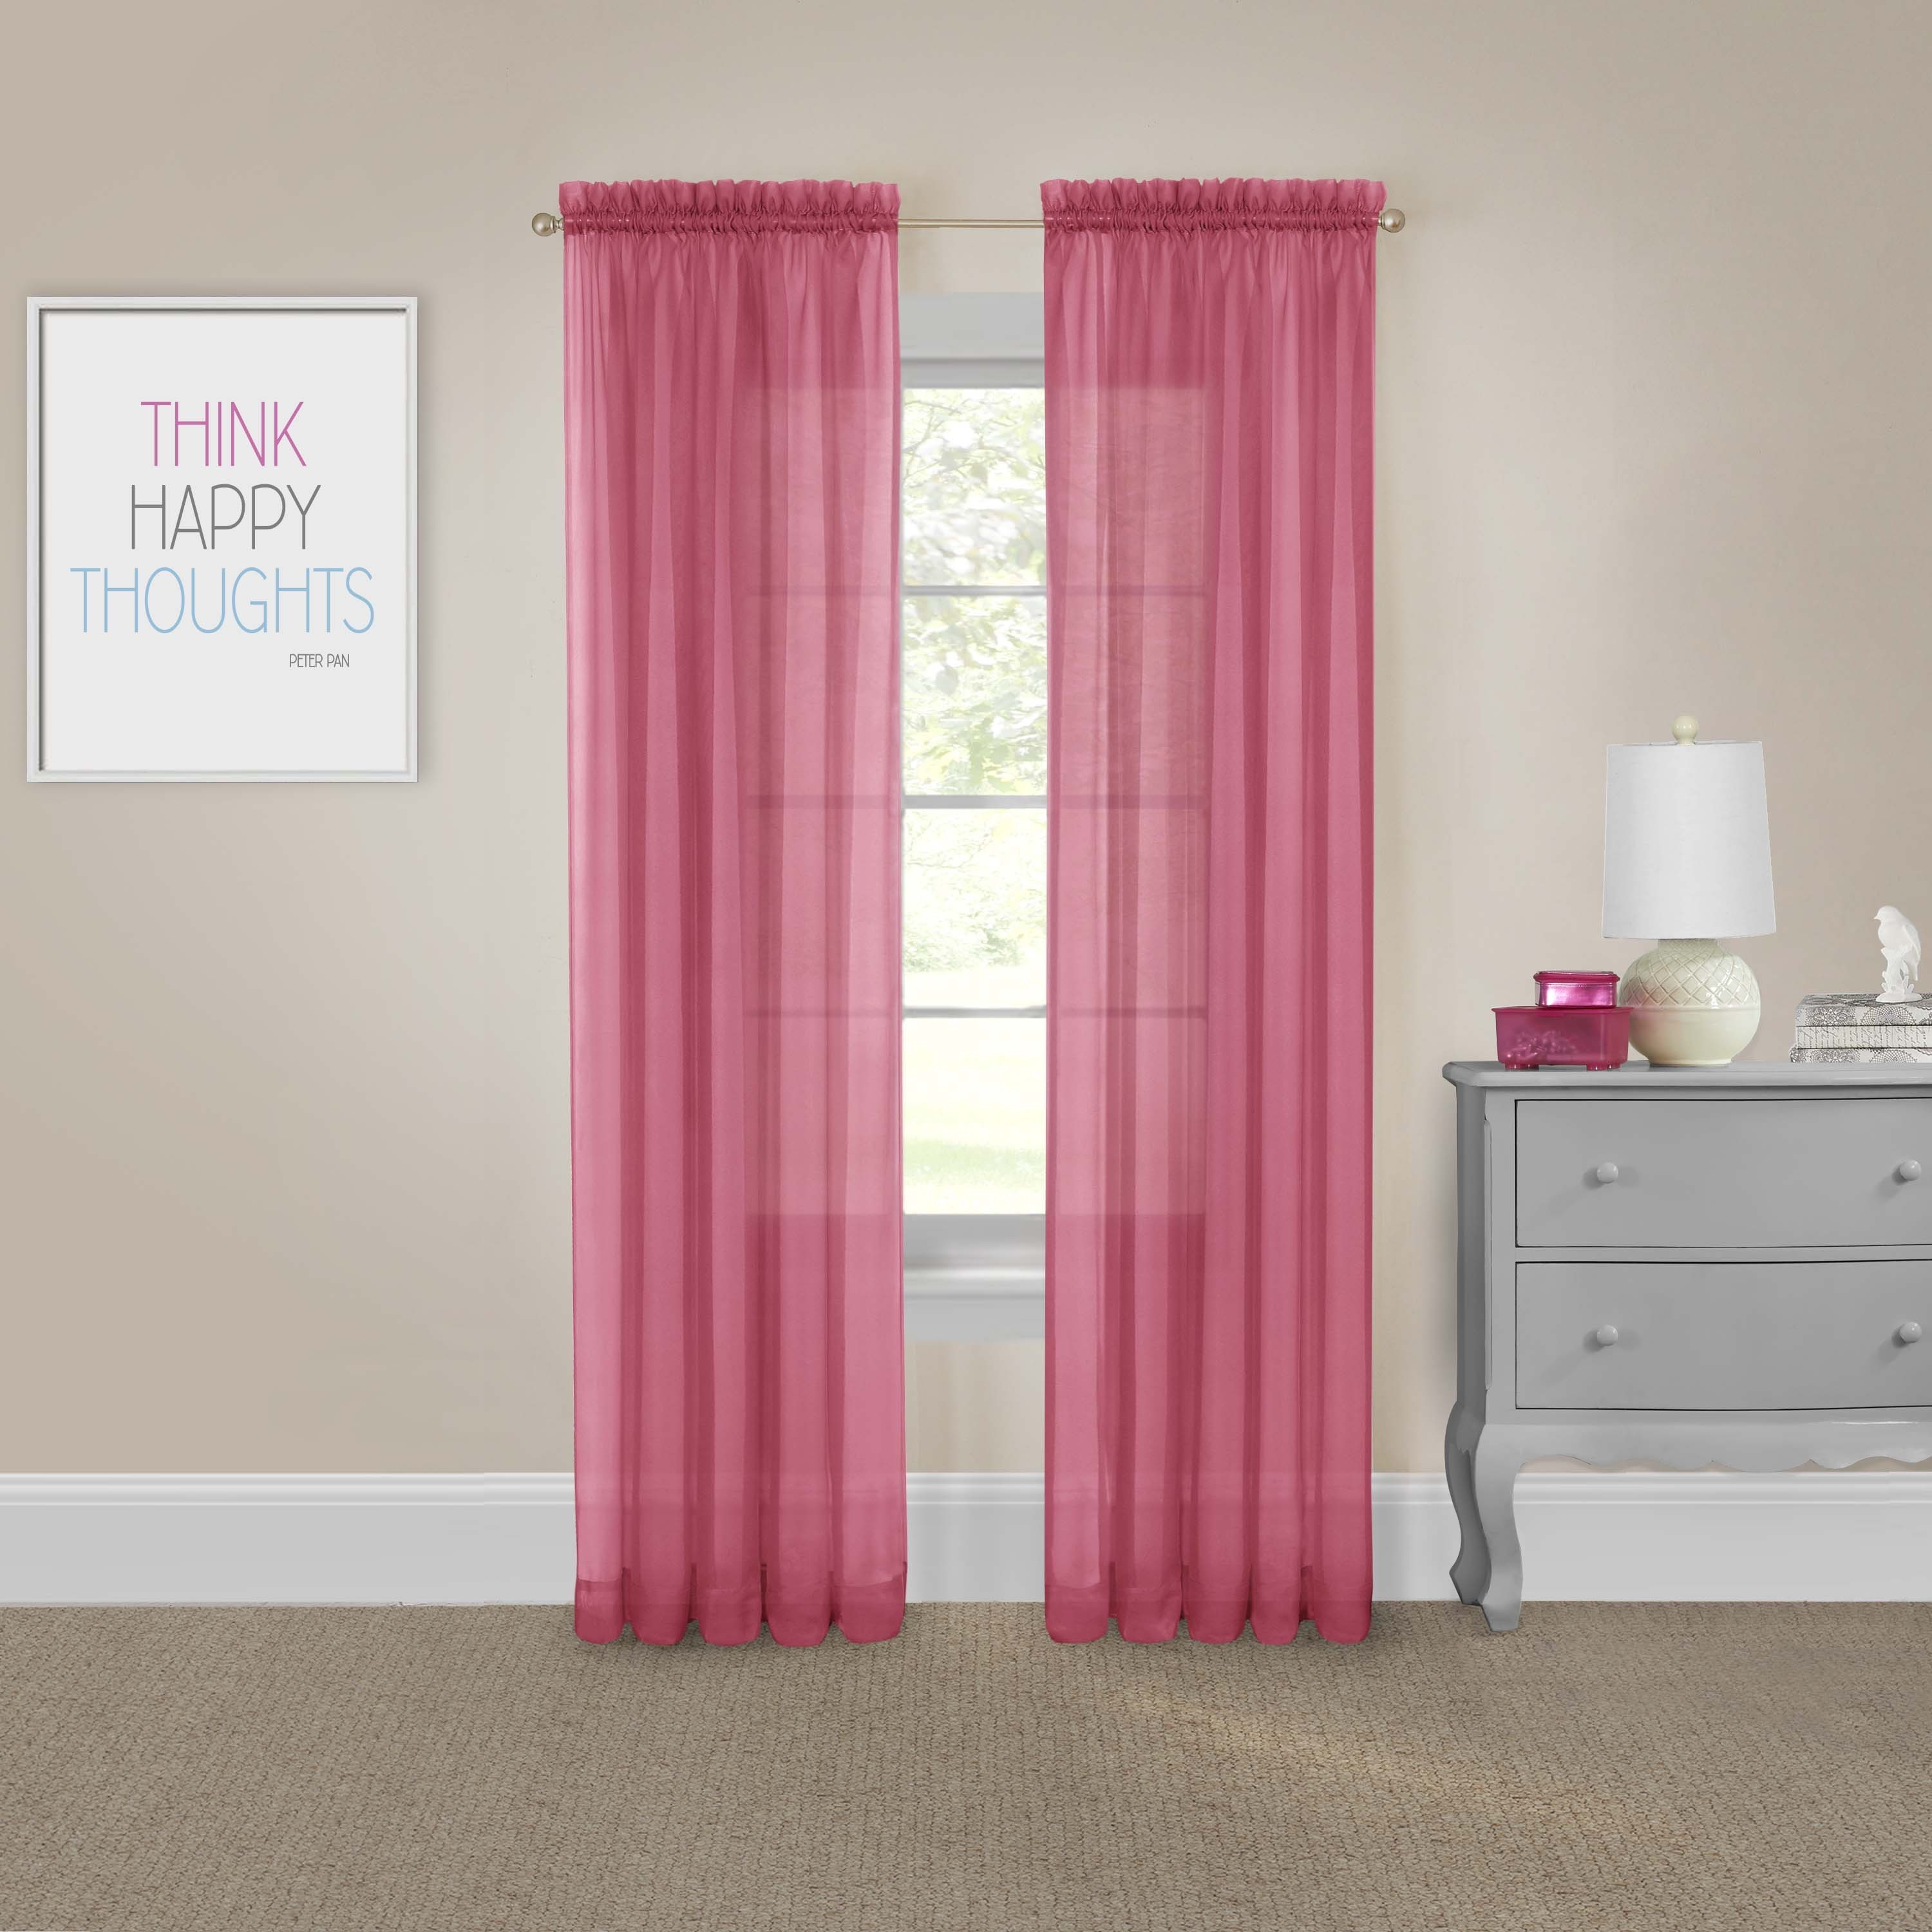 Pairs To Go Victoria Voile Curtain Panel Pair In Luxury Collection Summit Sheer Curtain Panel Pairs (View 19 of 20)